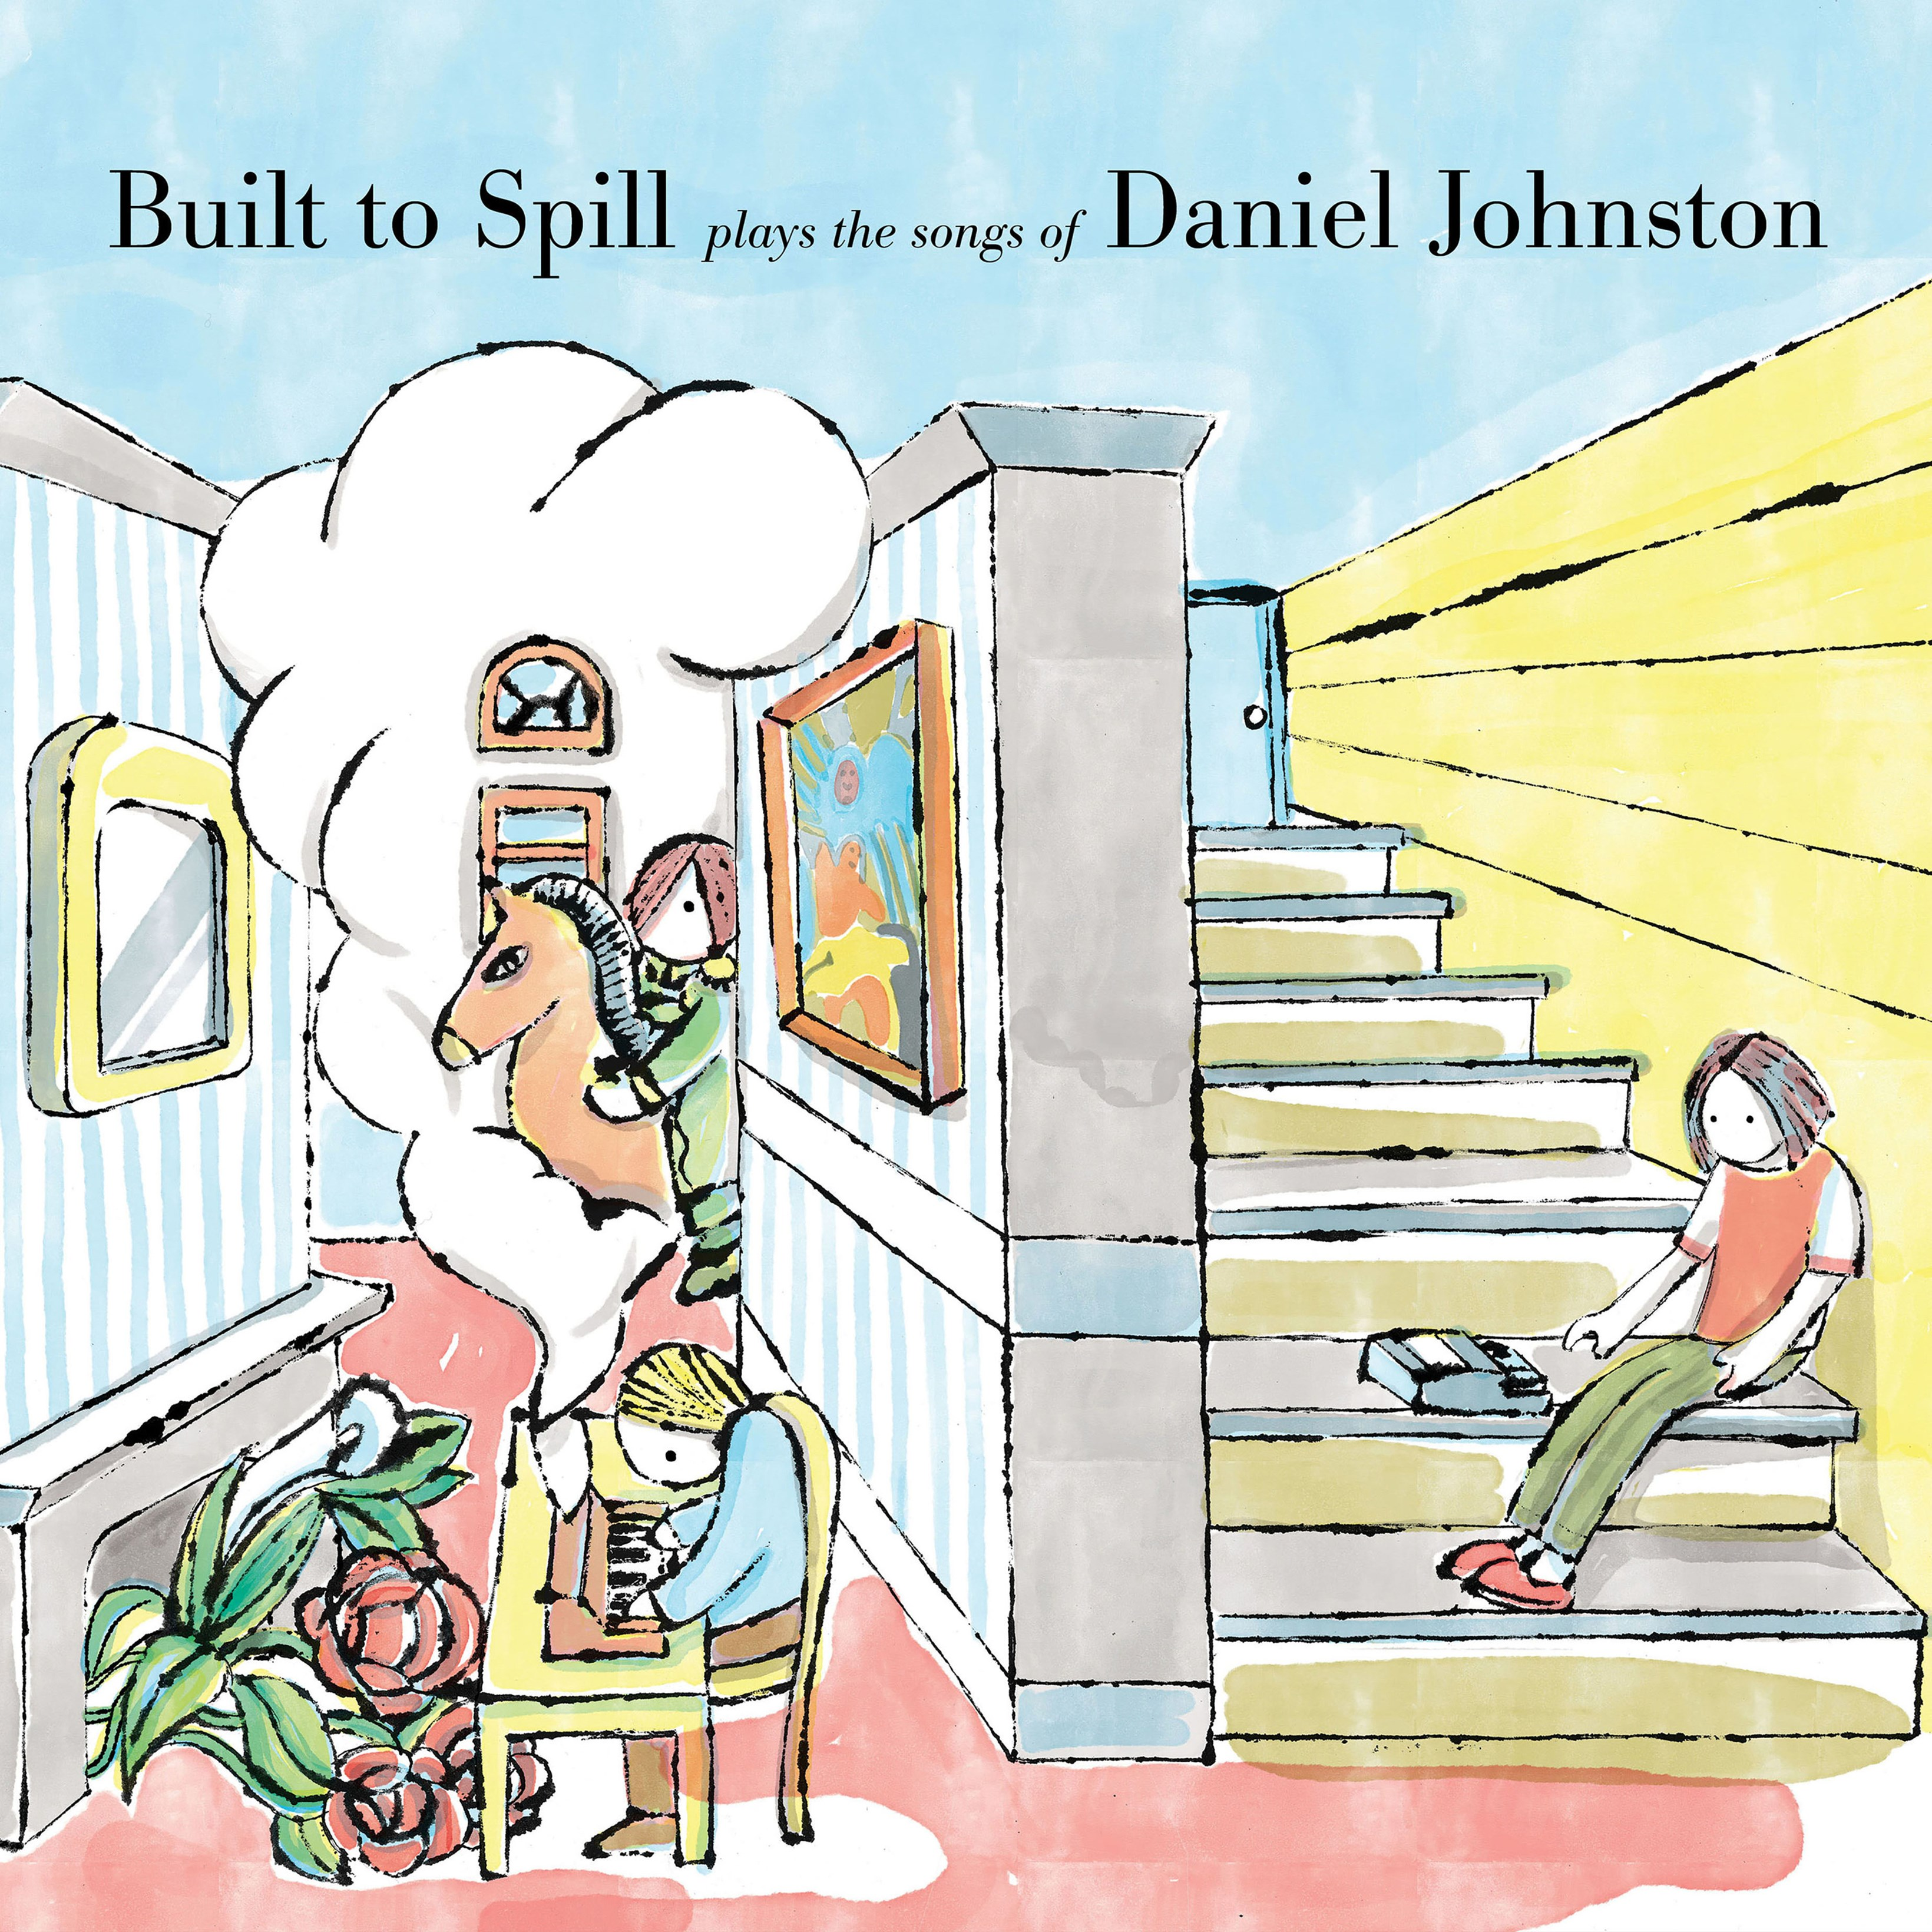 Built to Spill Plays the Songs of Daniel Johnston - 1